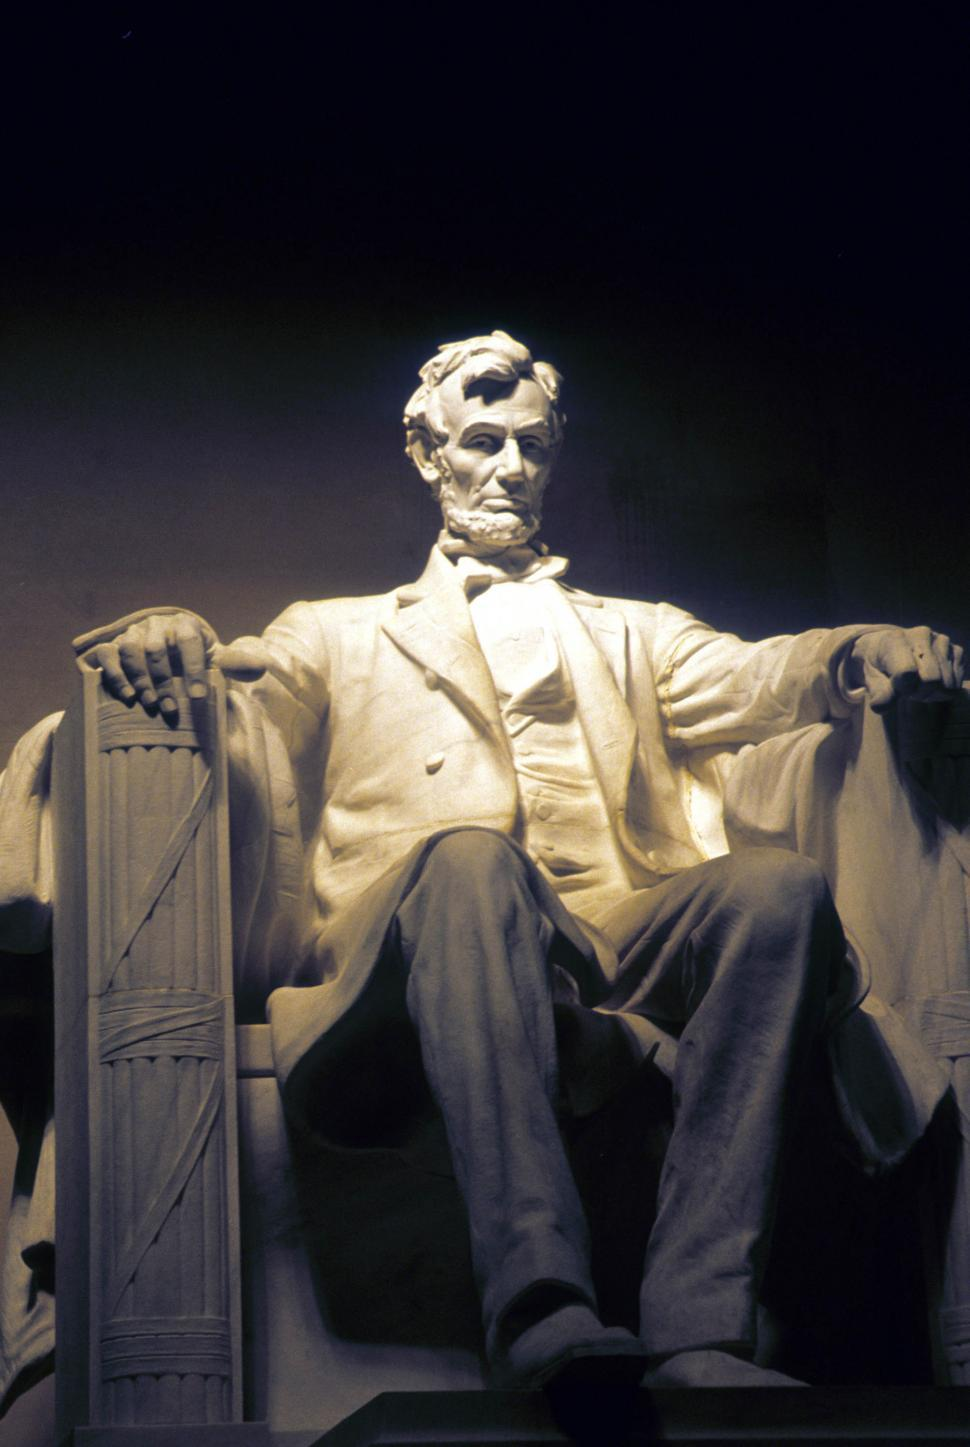 Download Free Stock HD Photo of Abraham Lincoln statue Online